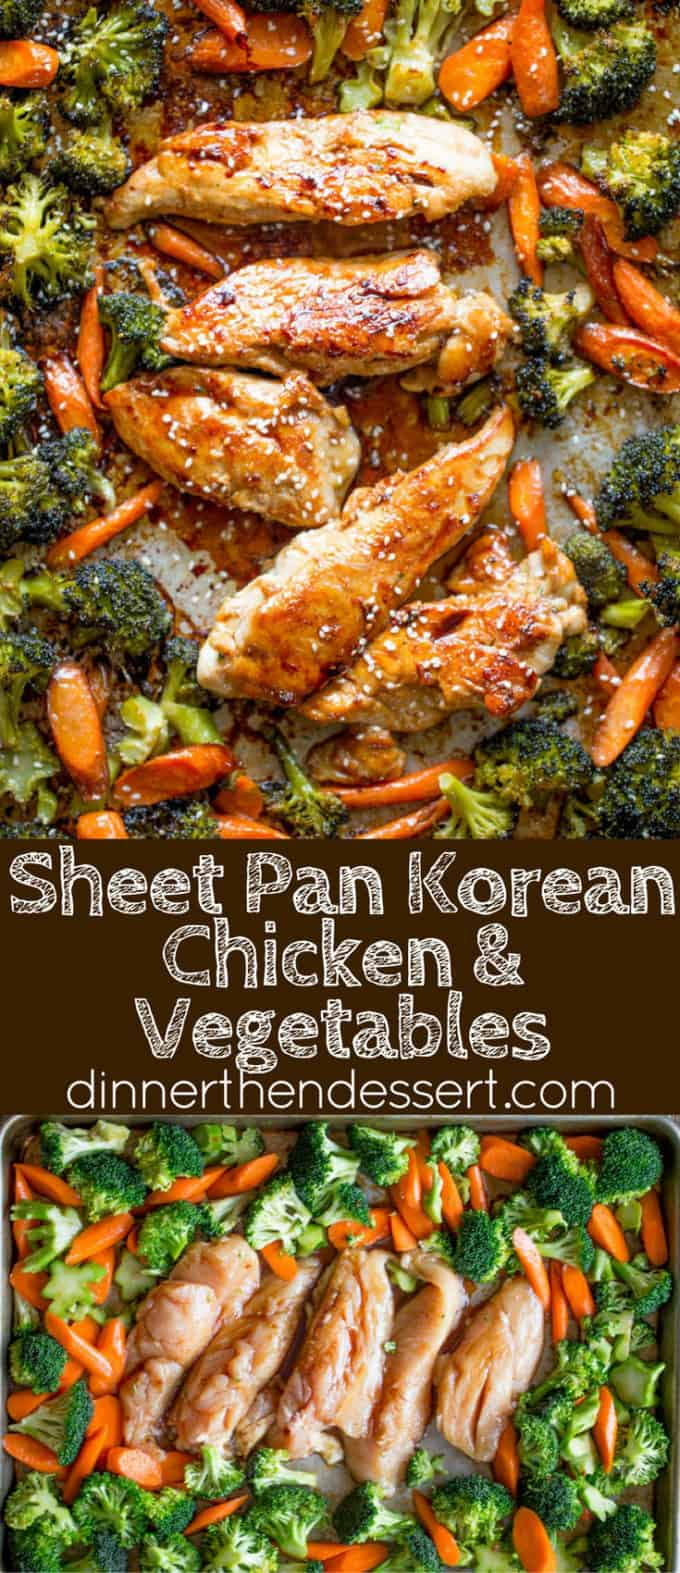 Sheet pan korean chicken and vegetables dinner then dessert sheet pan korean chicken and vegetables are a delicious and easy weeknight meal that cooks in forumfinder Image collections